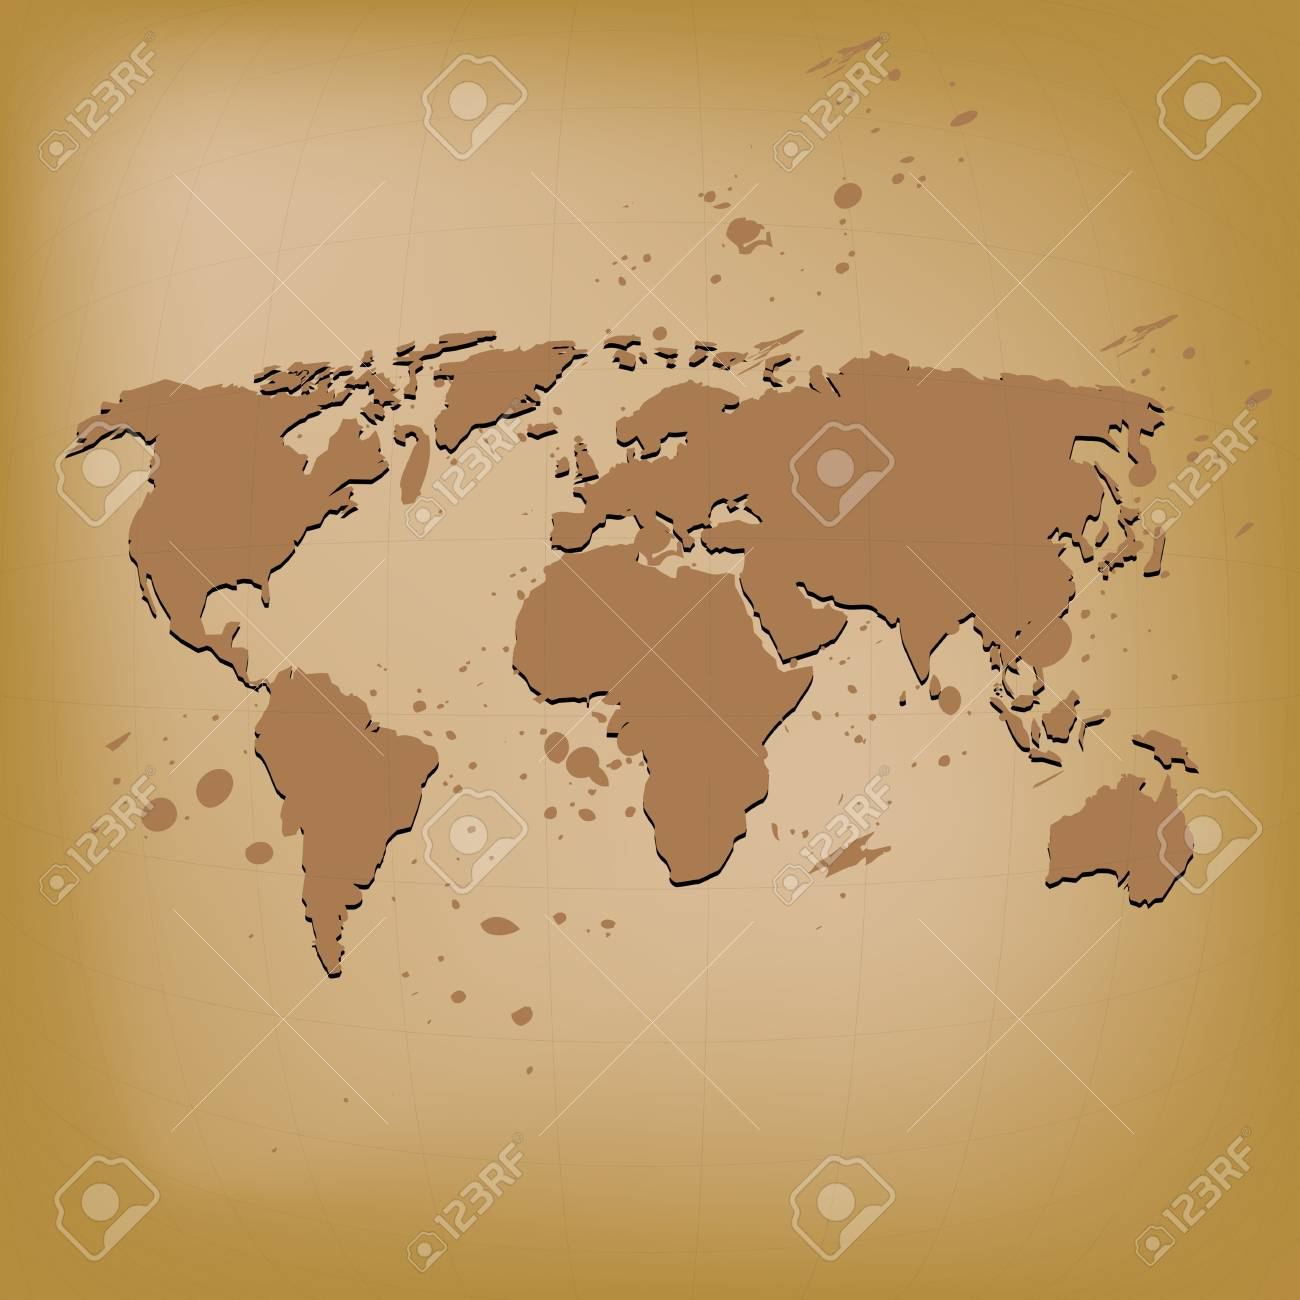 Old world map vector illustration royalty free cliparts vectors old world map vector illustration stock vector 16319513 gumiabroncs Choice Image